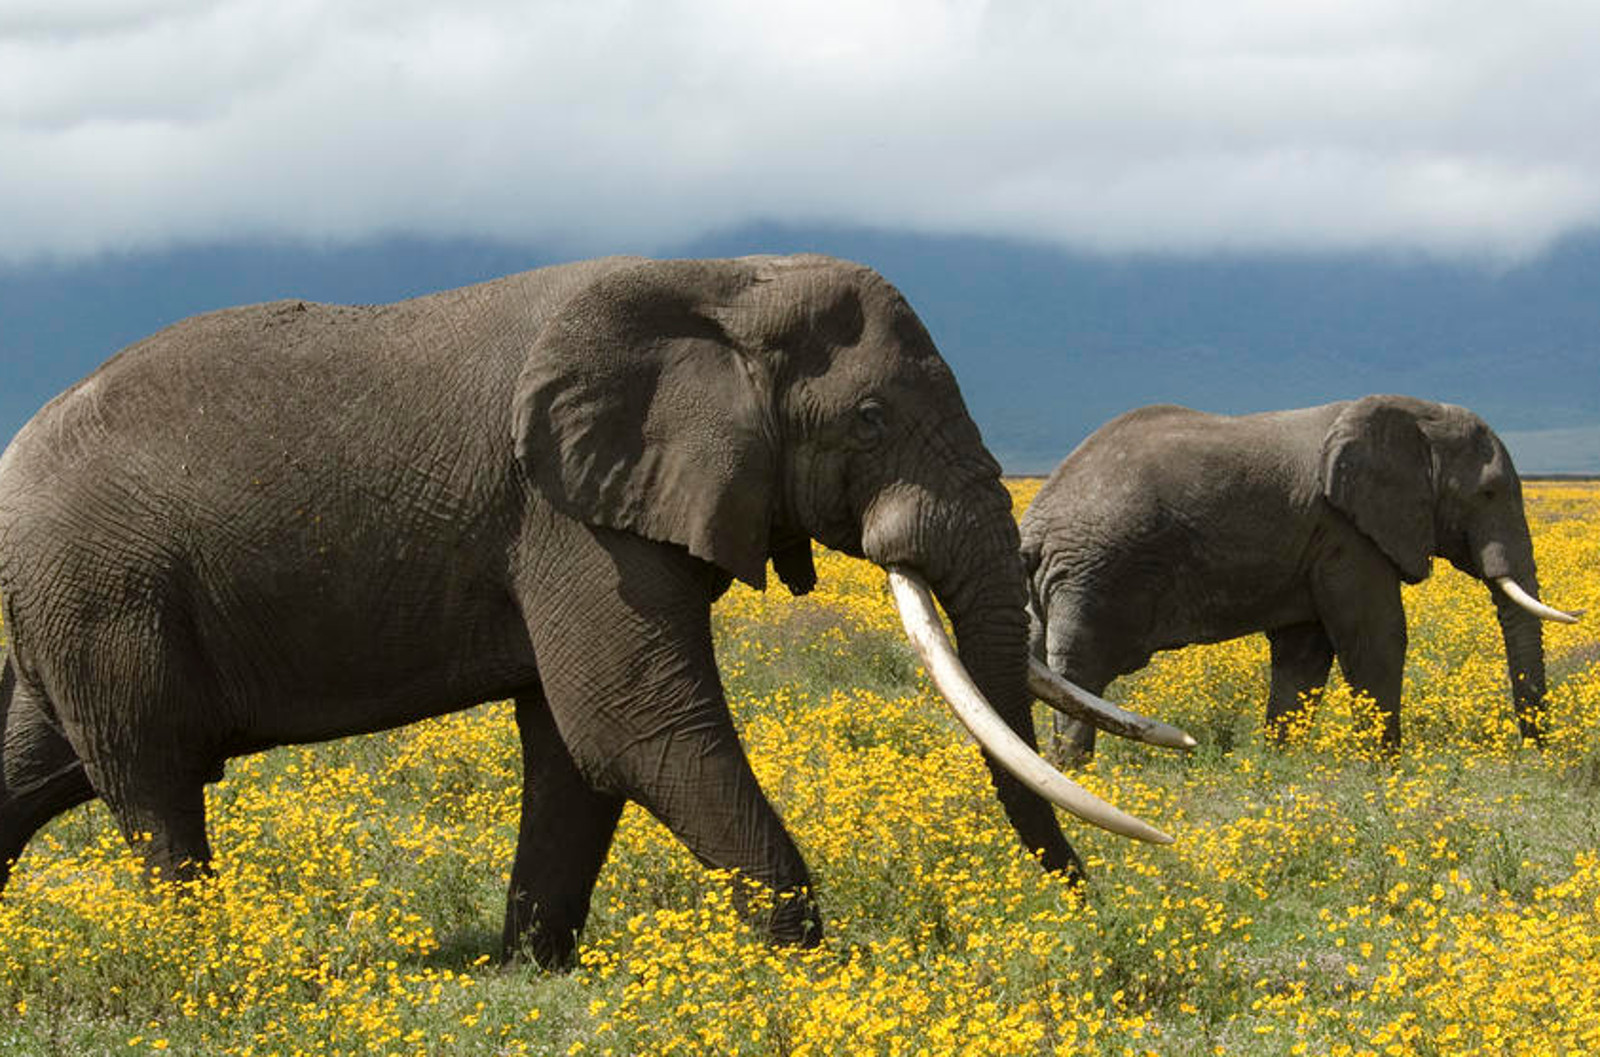 6 Super Creative Anti-Poaching Tactics That Just Might Save The World's Most Endangered Species